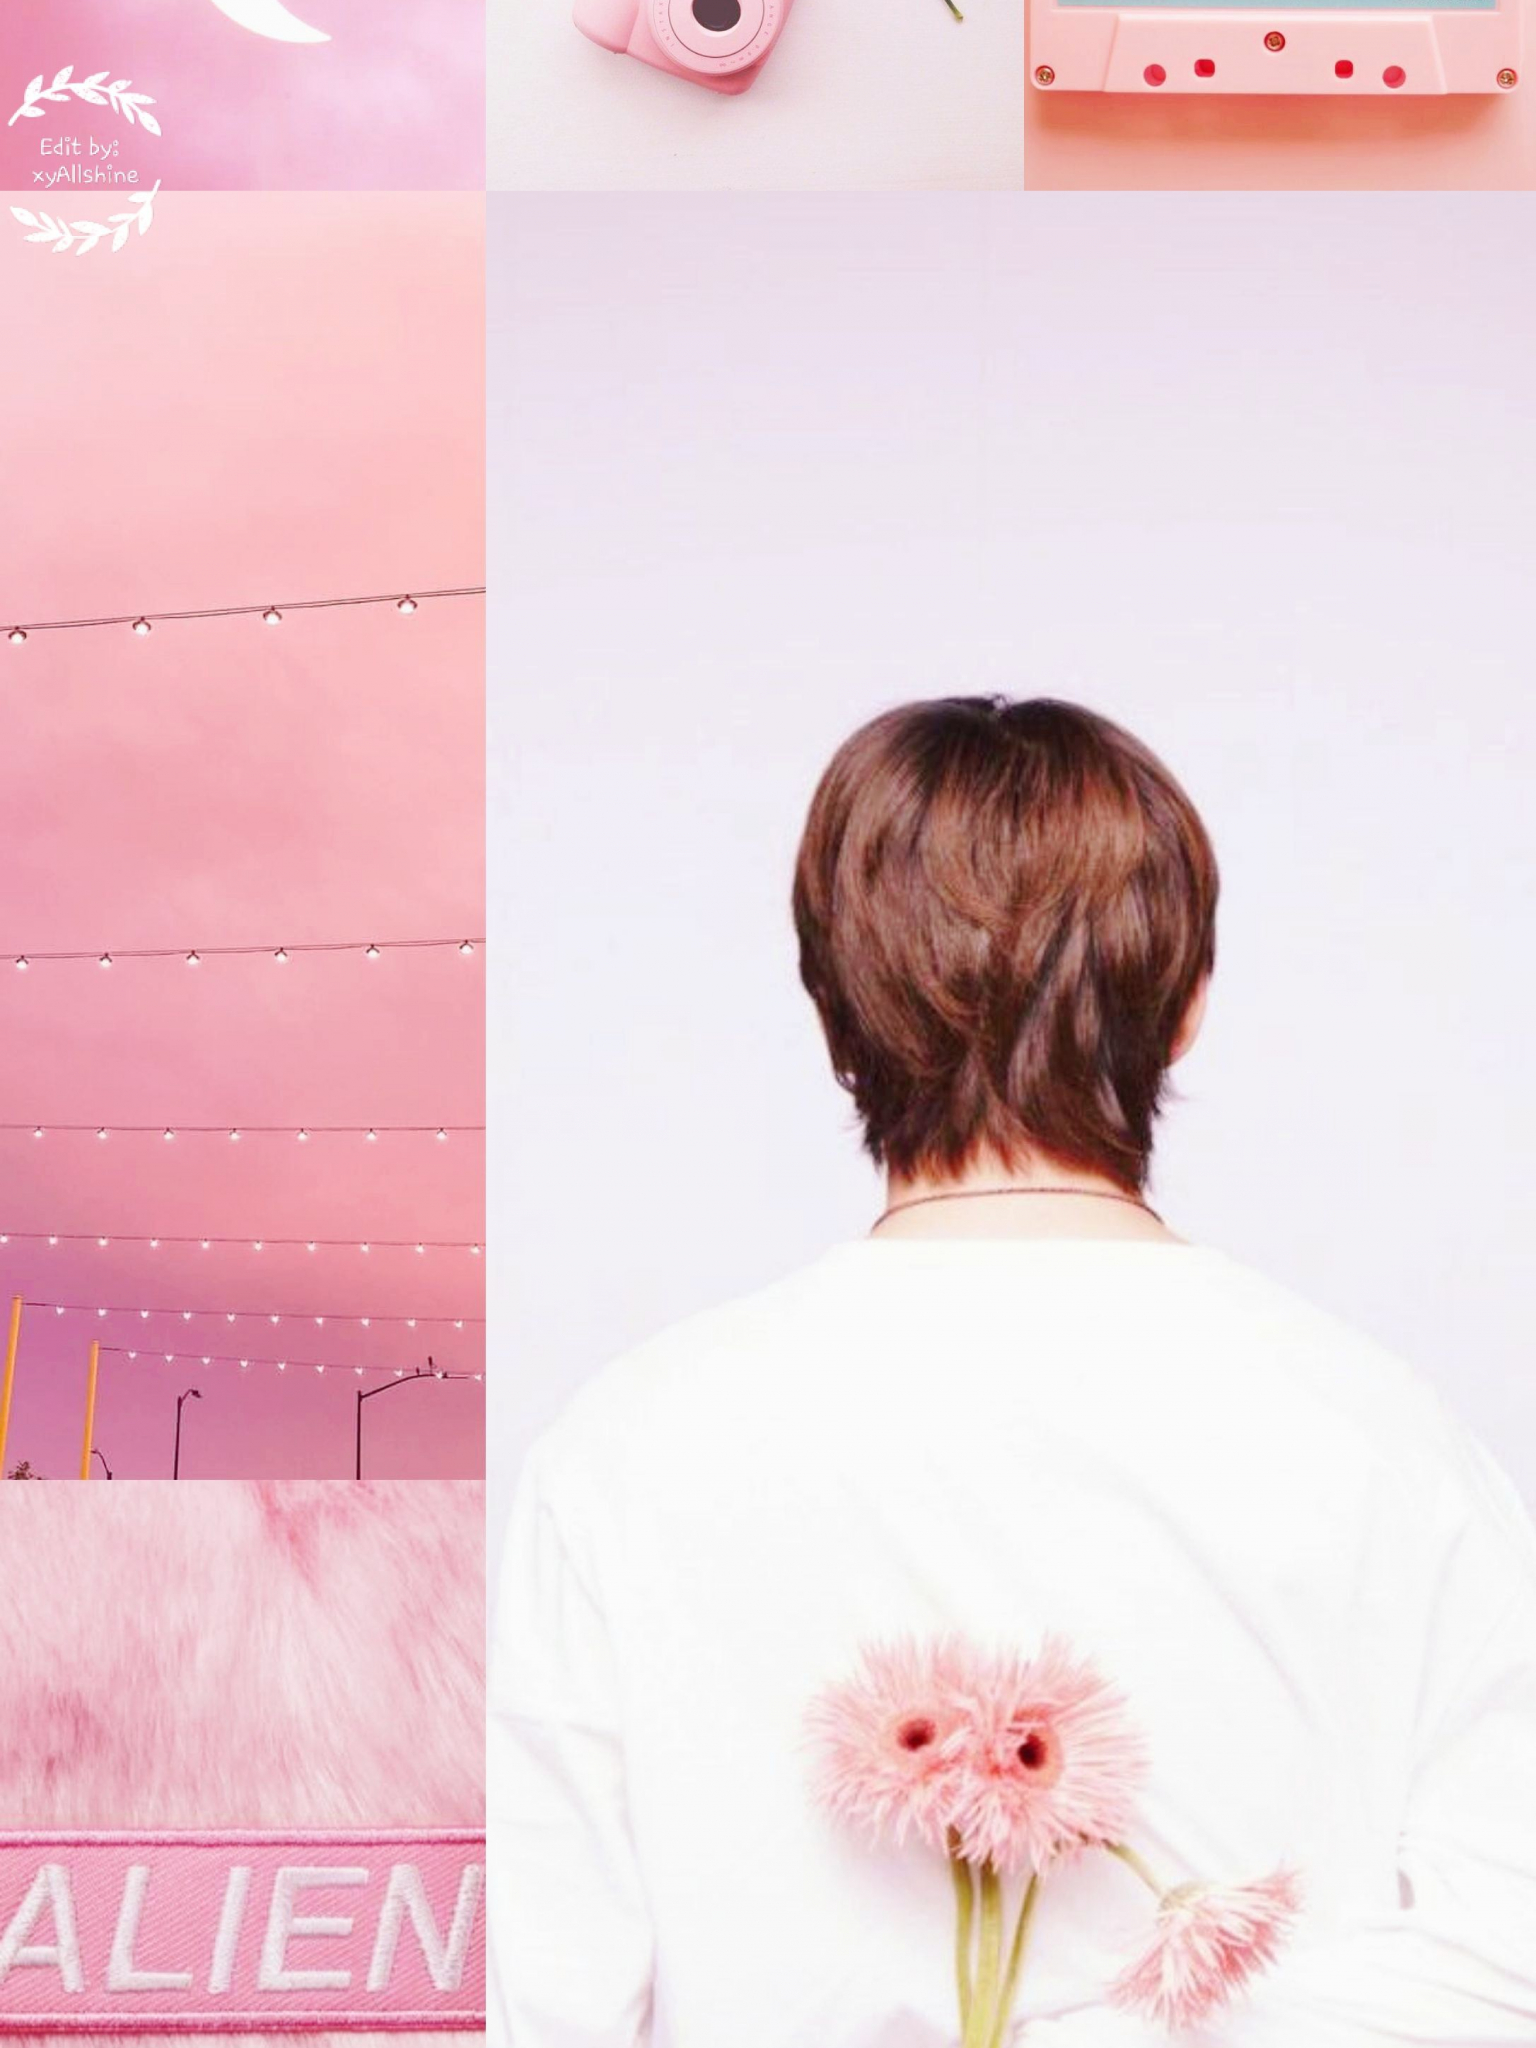 Free Download Bts V Aesthetic Wallpaper With Images 2172x3862 For Your Desktop Mobile Tablet Explore 5 Bts V 2020 Aesthetic Wallpapers Bts V 2020 Aesthetic Wallpapers Bts Aesthetic Wallpaper Bts V Wallpaper